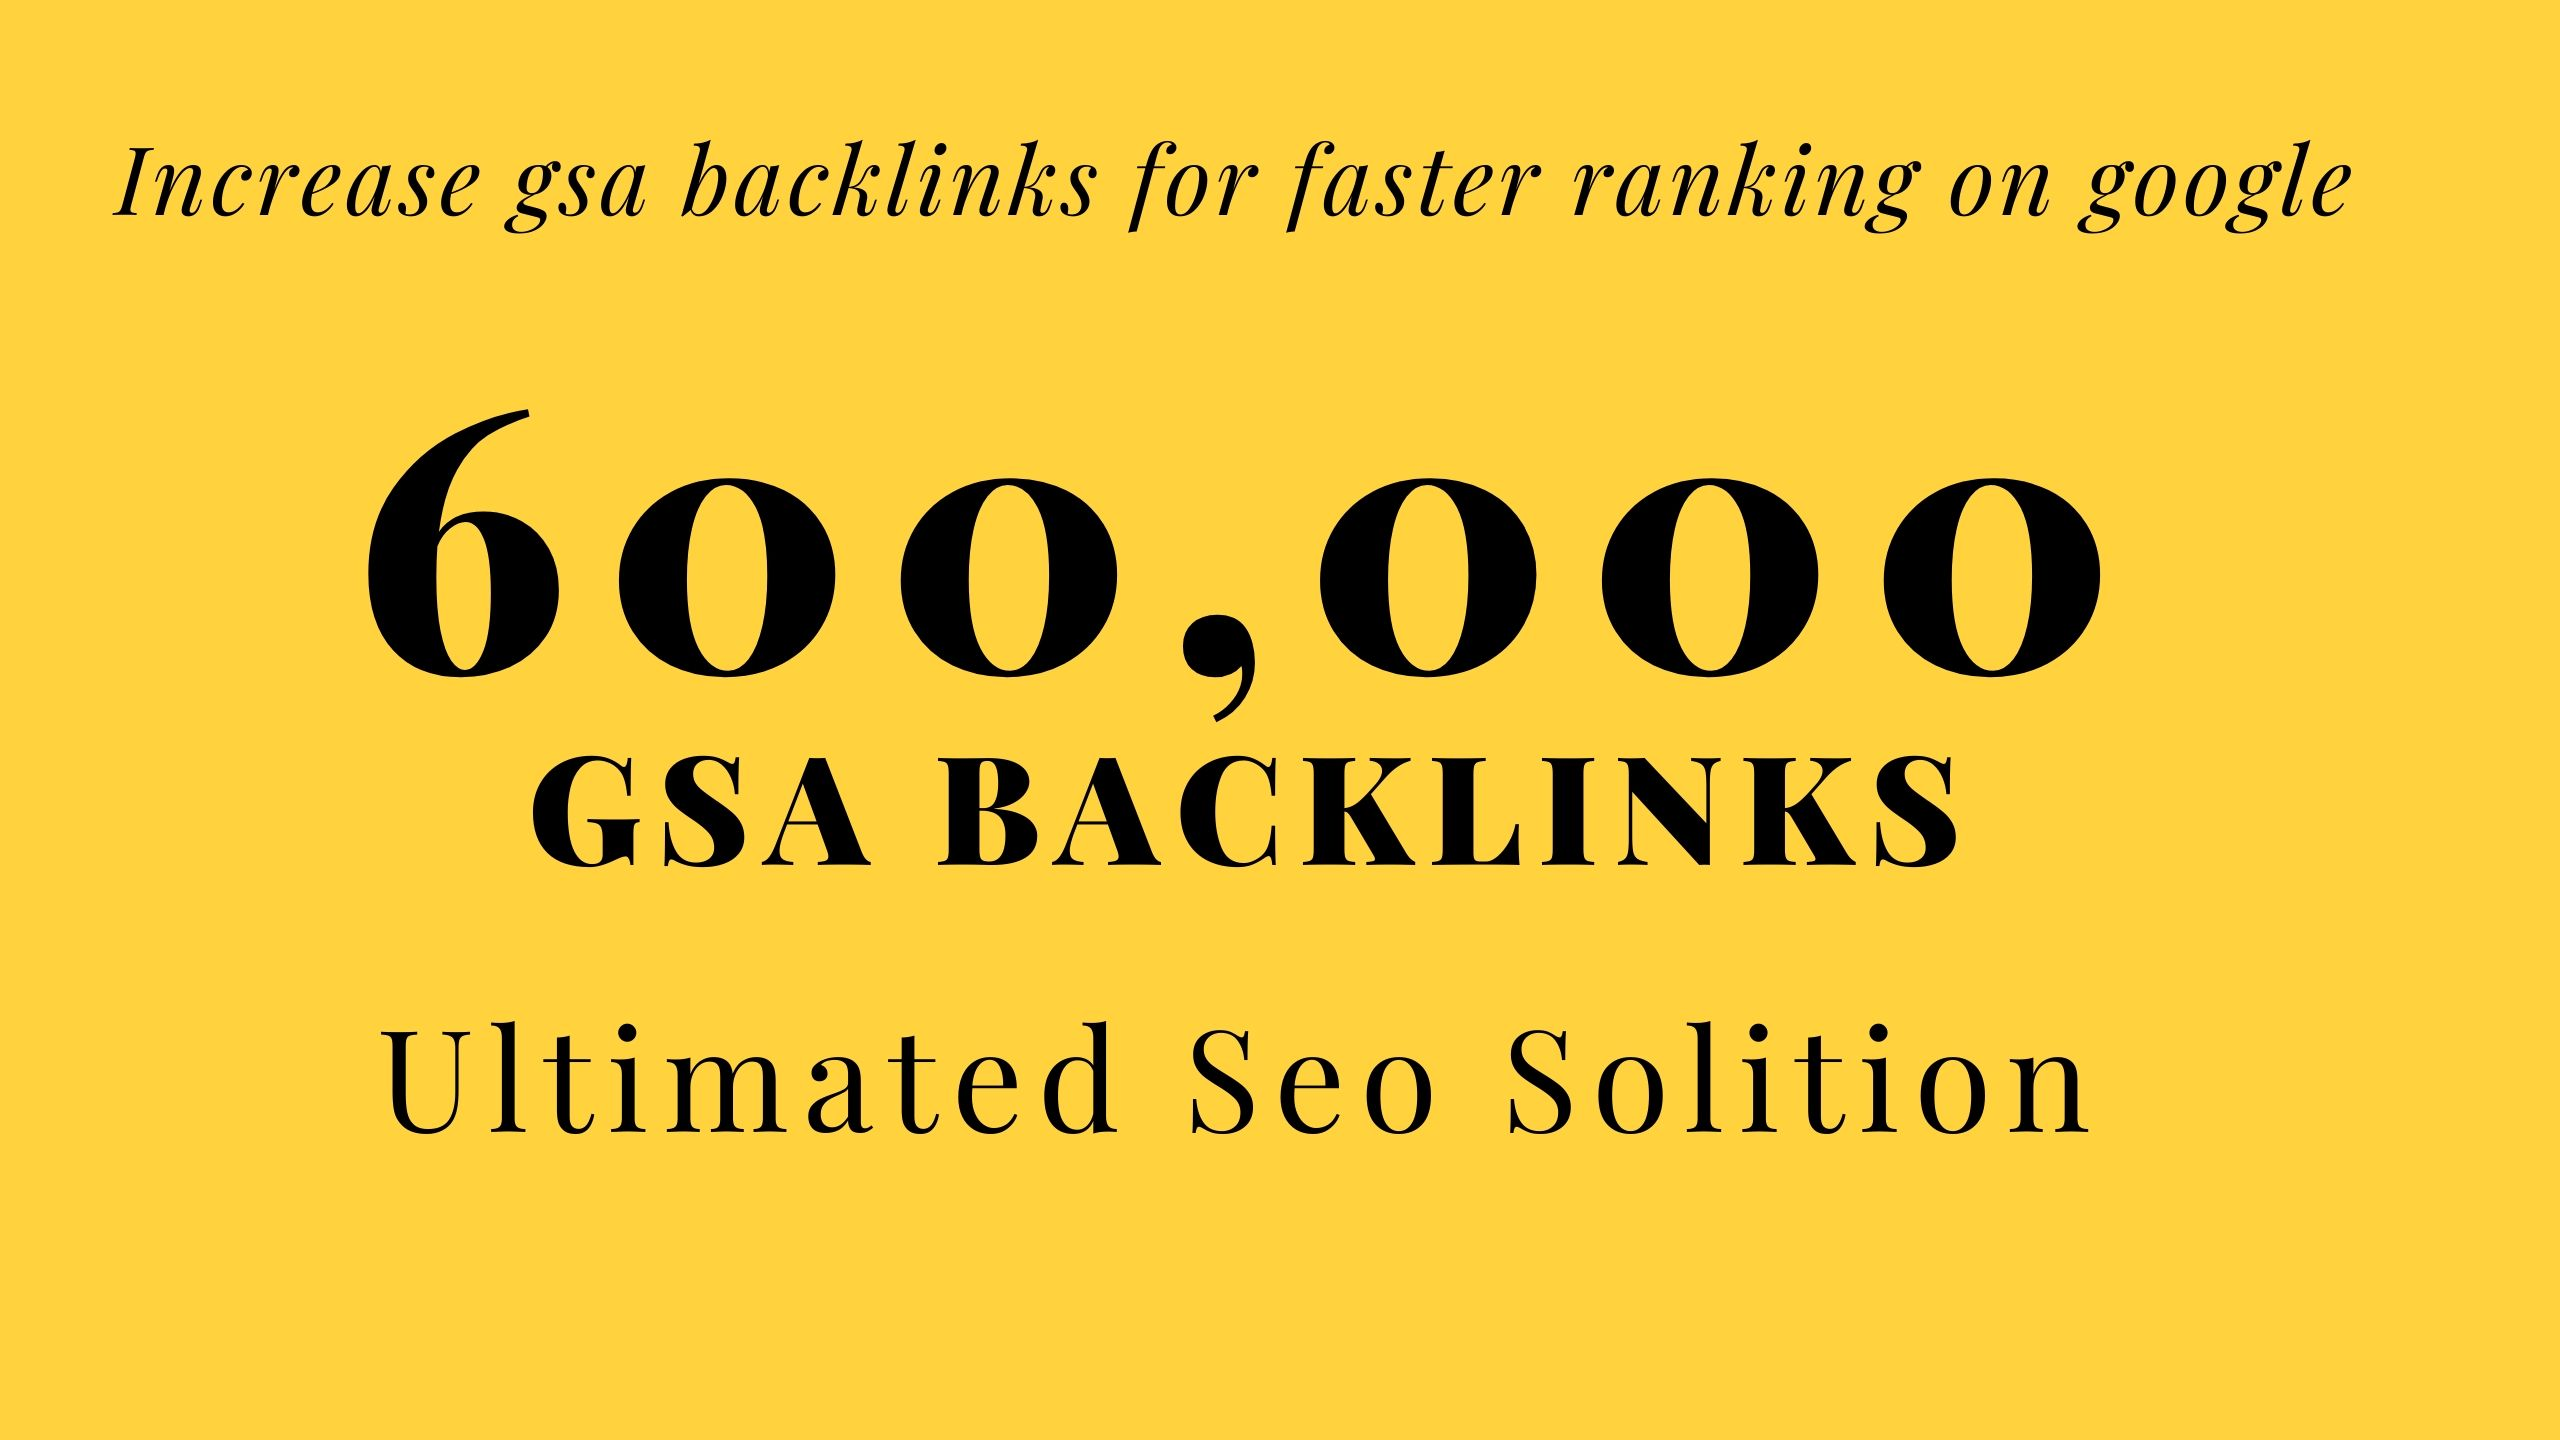 I will build 600,000 GSA Backlinks for faster ranking on your web page